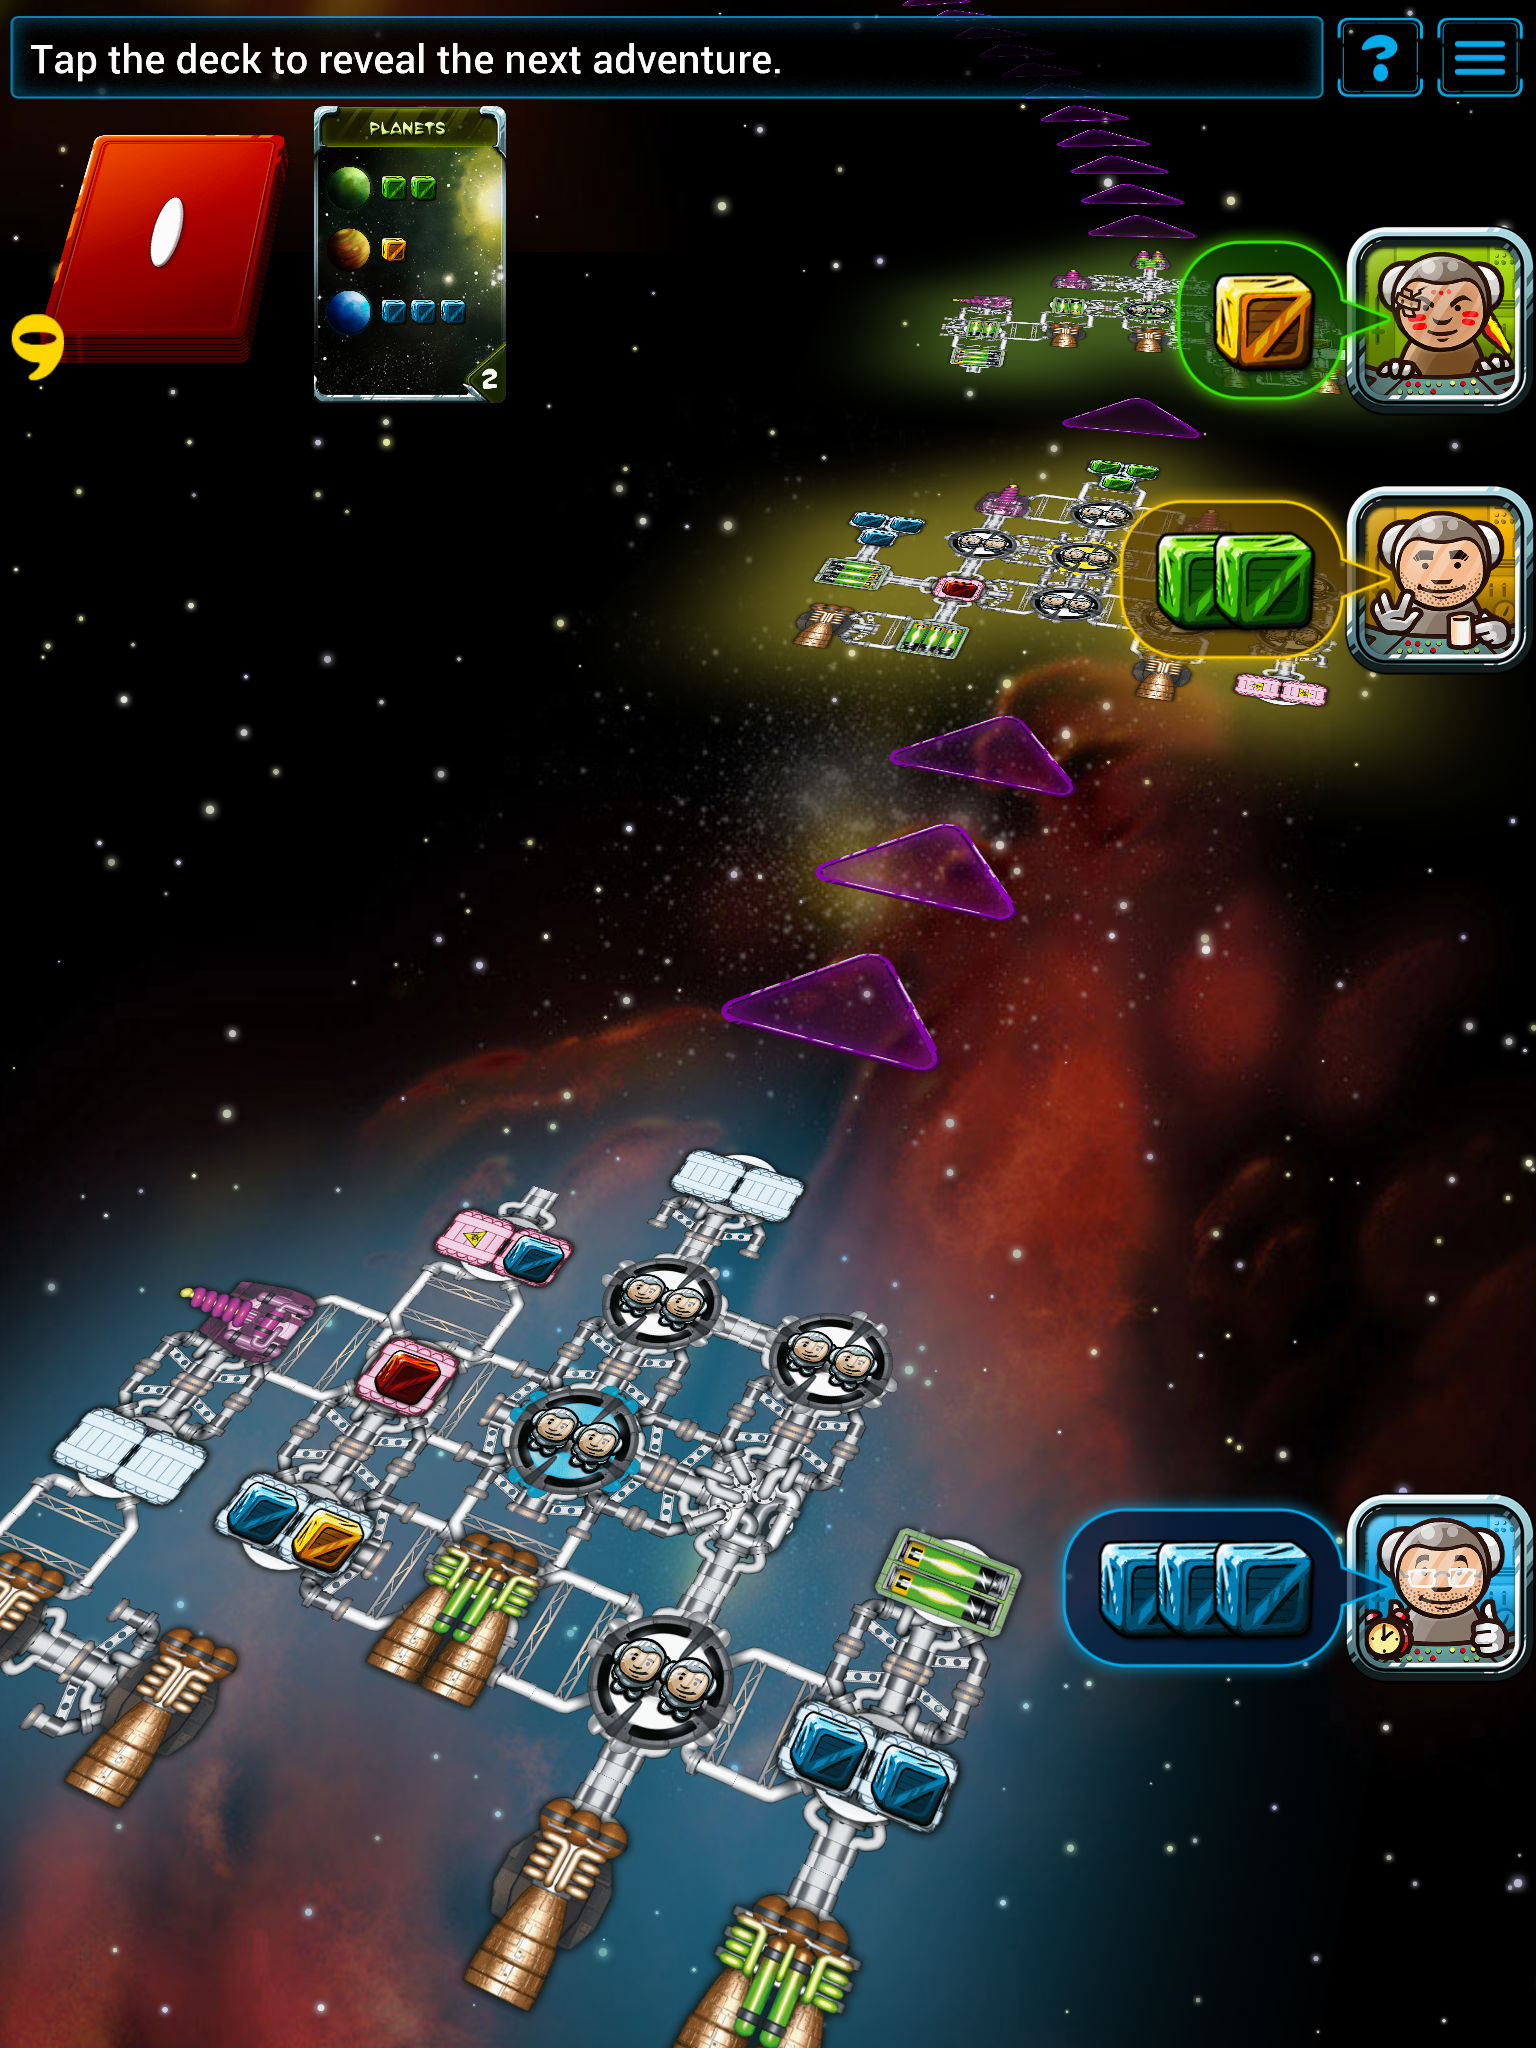 The 3 best sci-fi board games on mobile